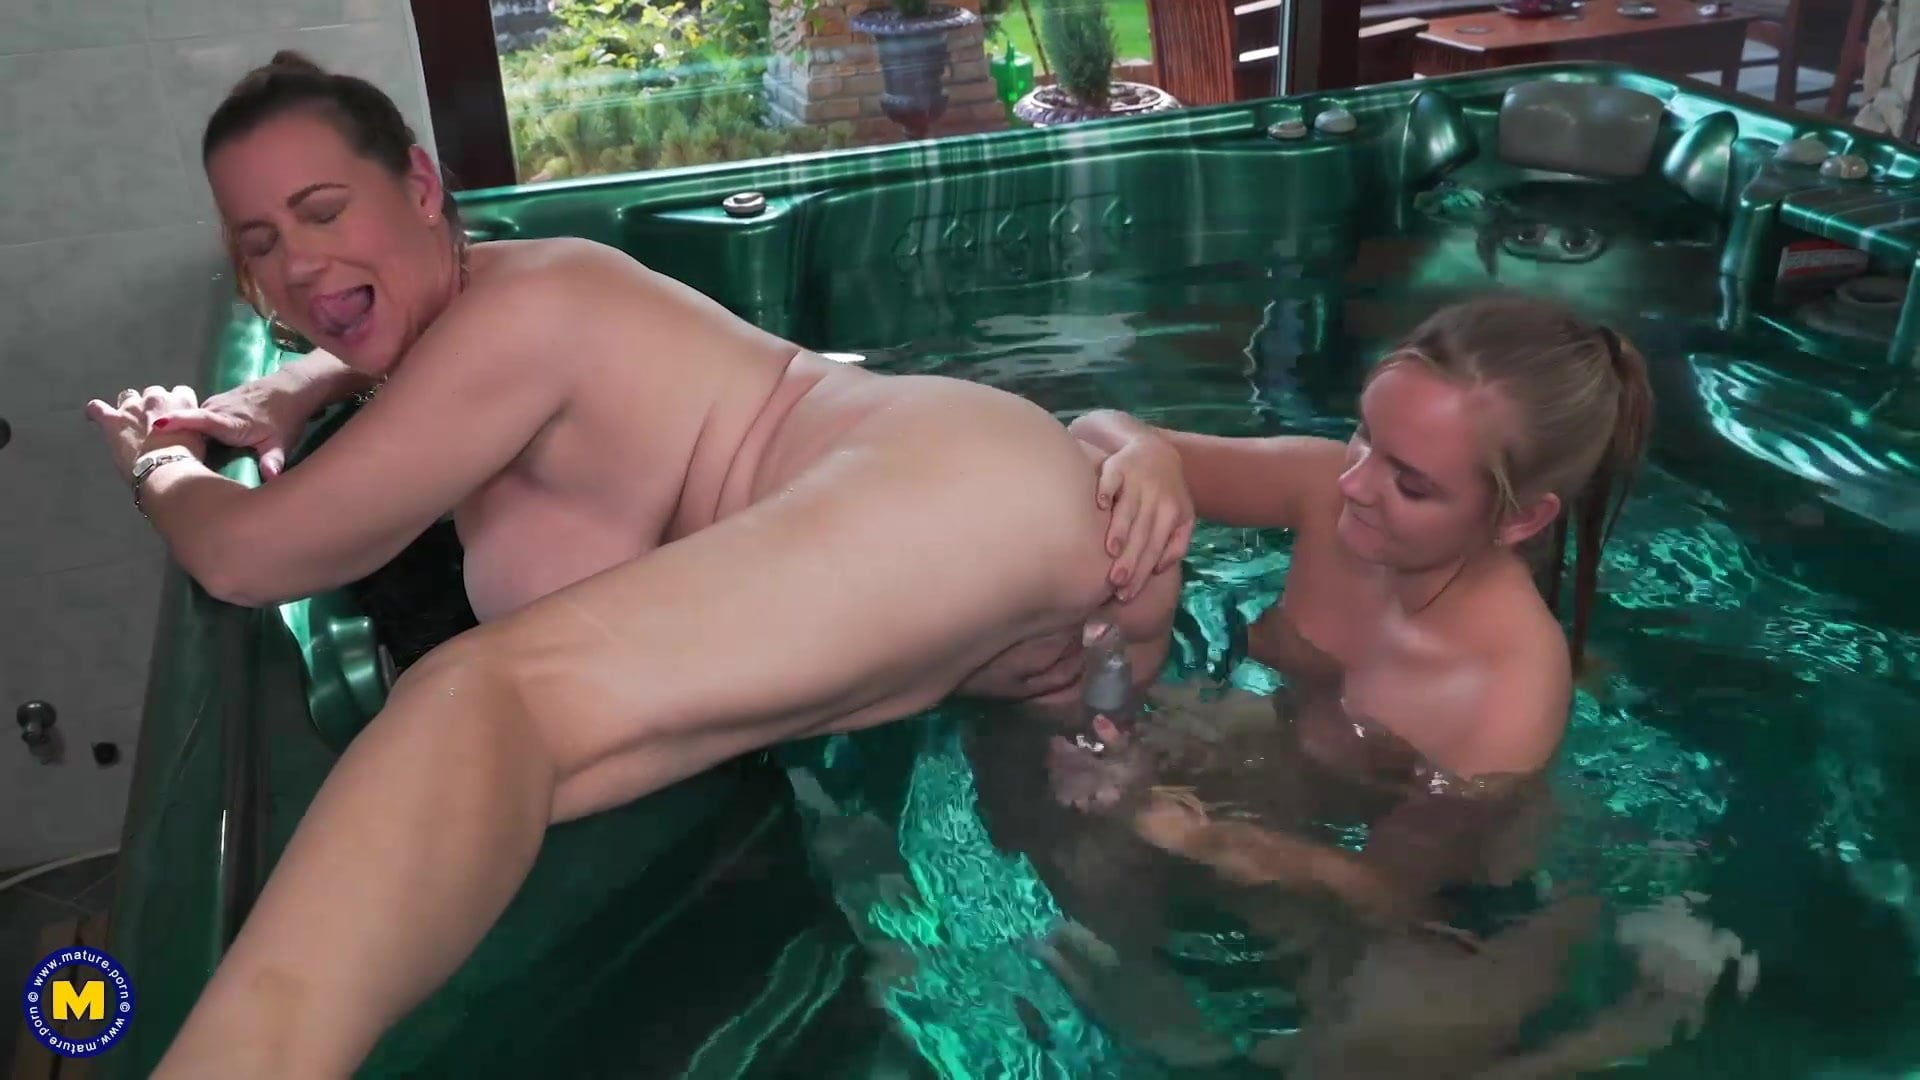 Mother and daughter intercourse in jacuzzi